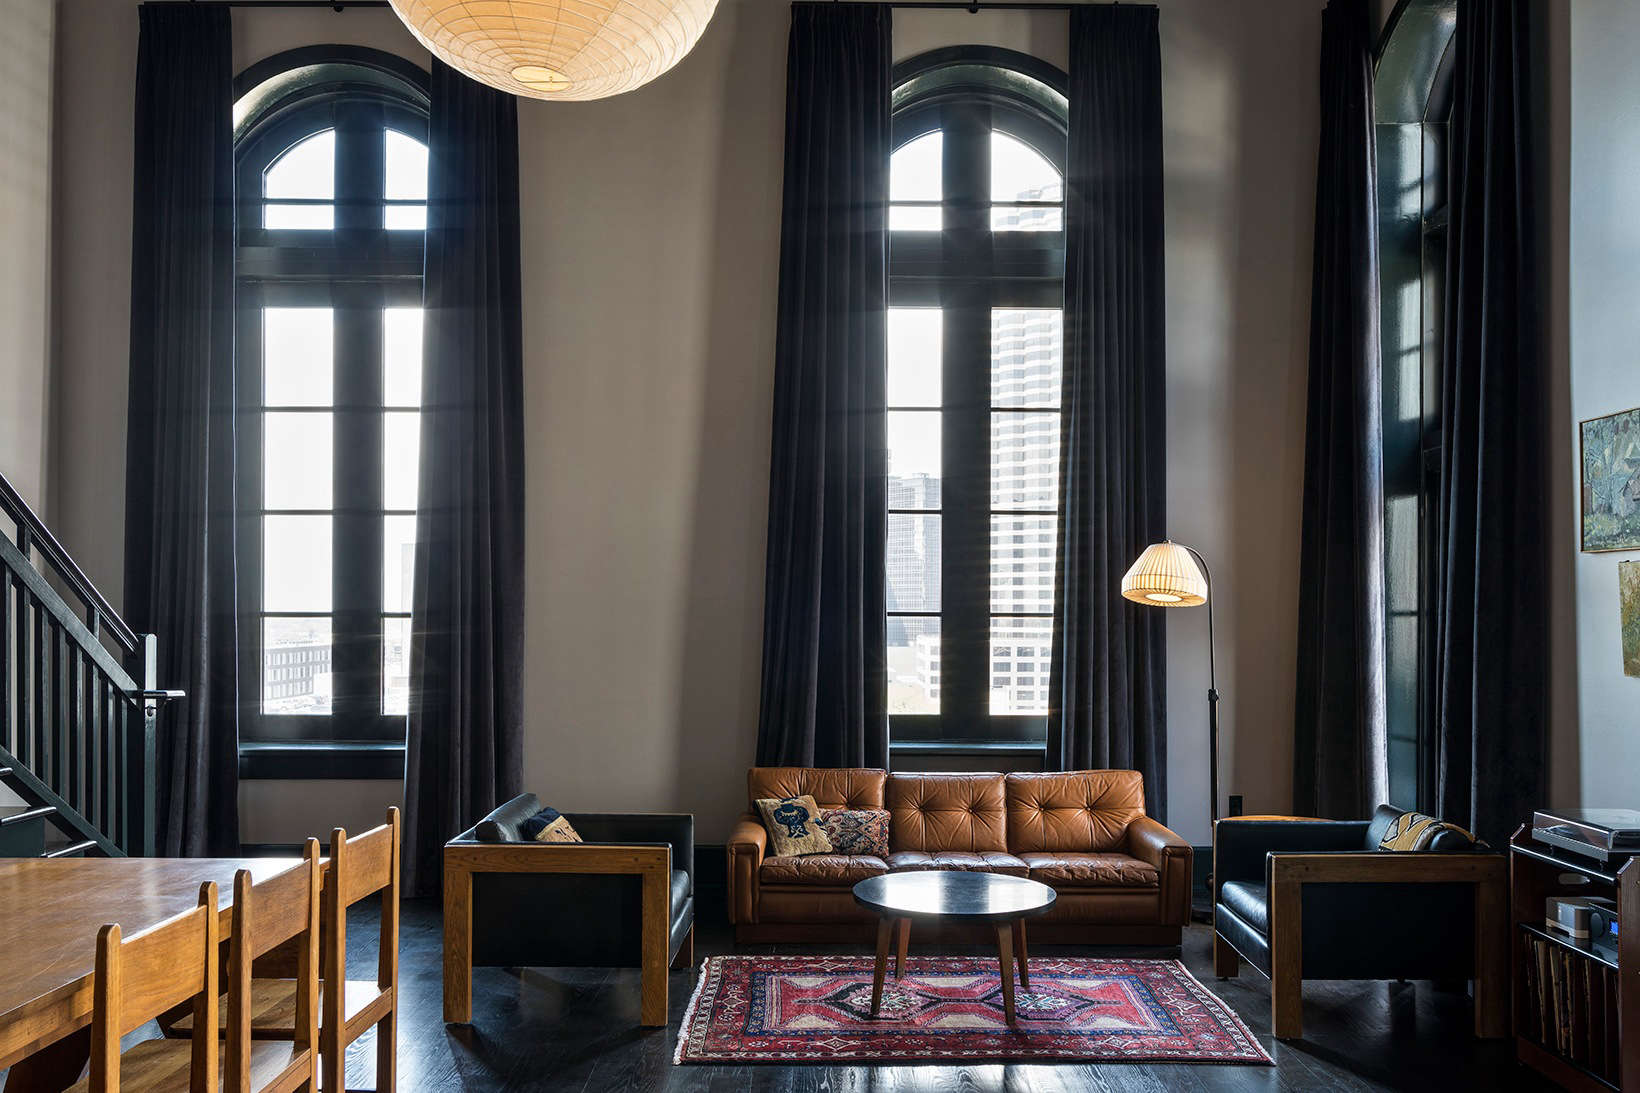 Hotels Lodging The Ace Hotel In New Orleans